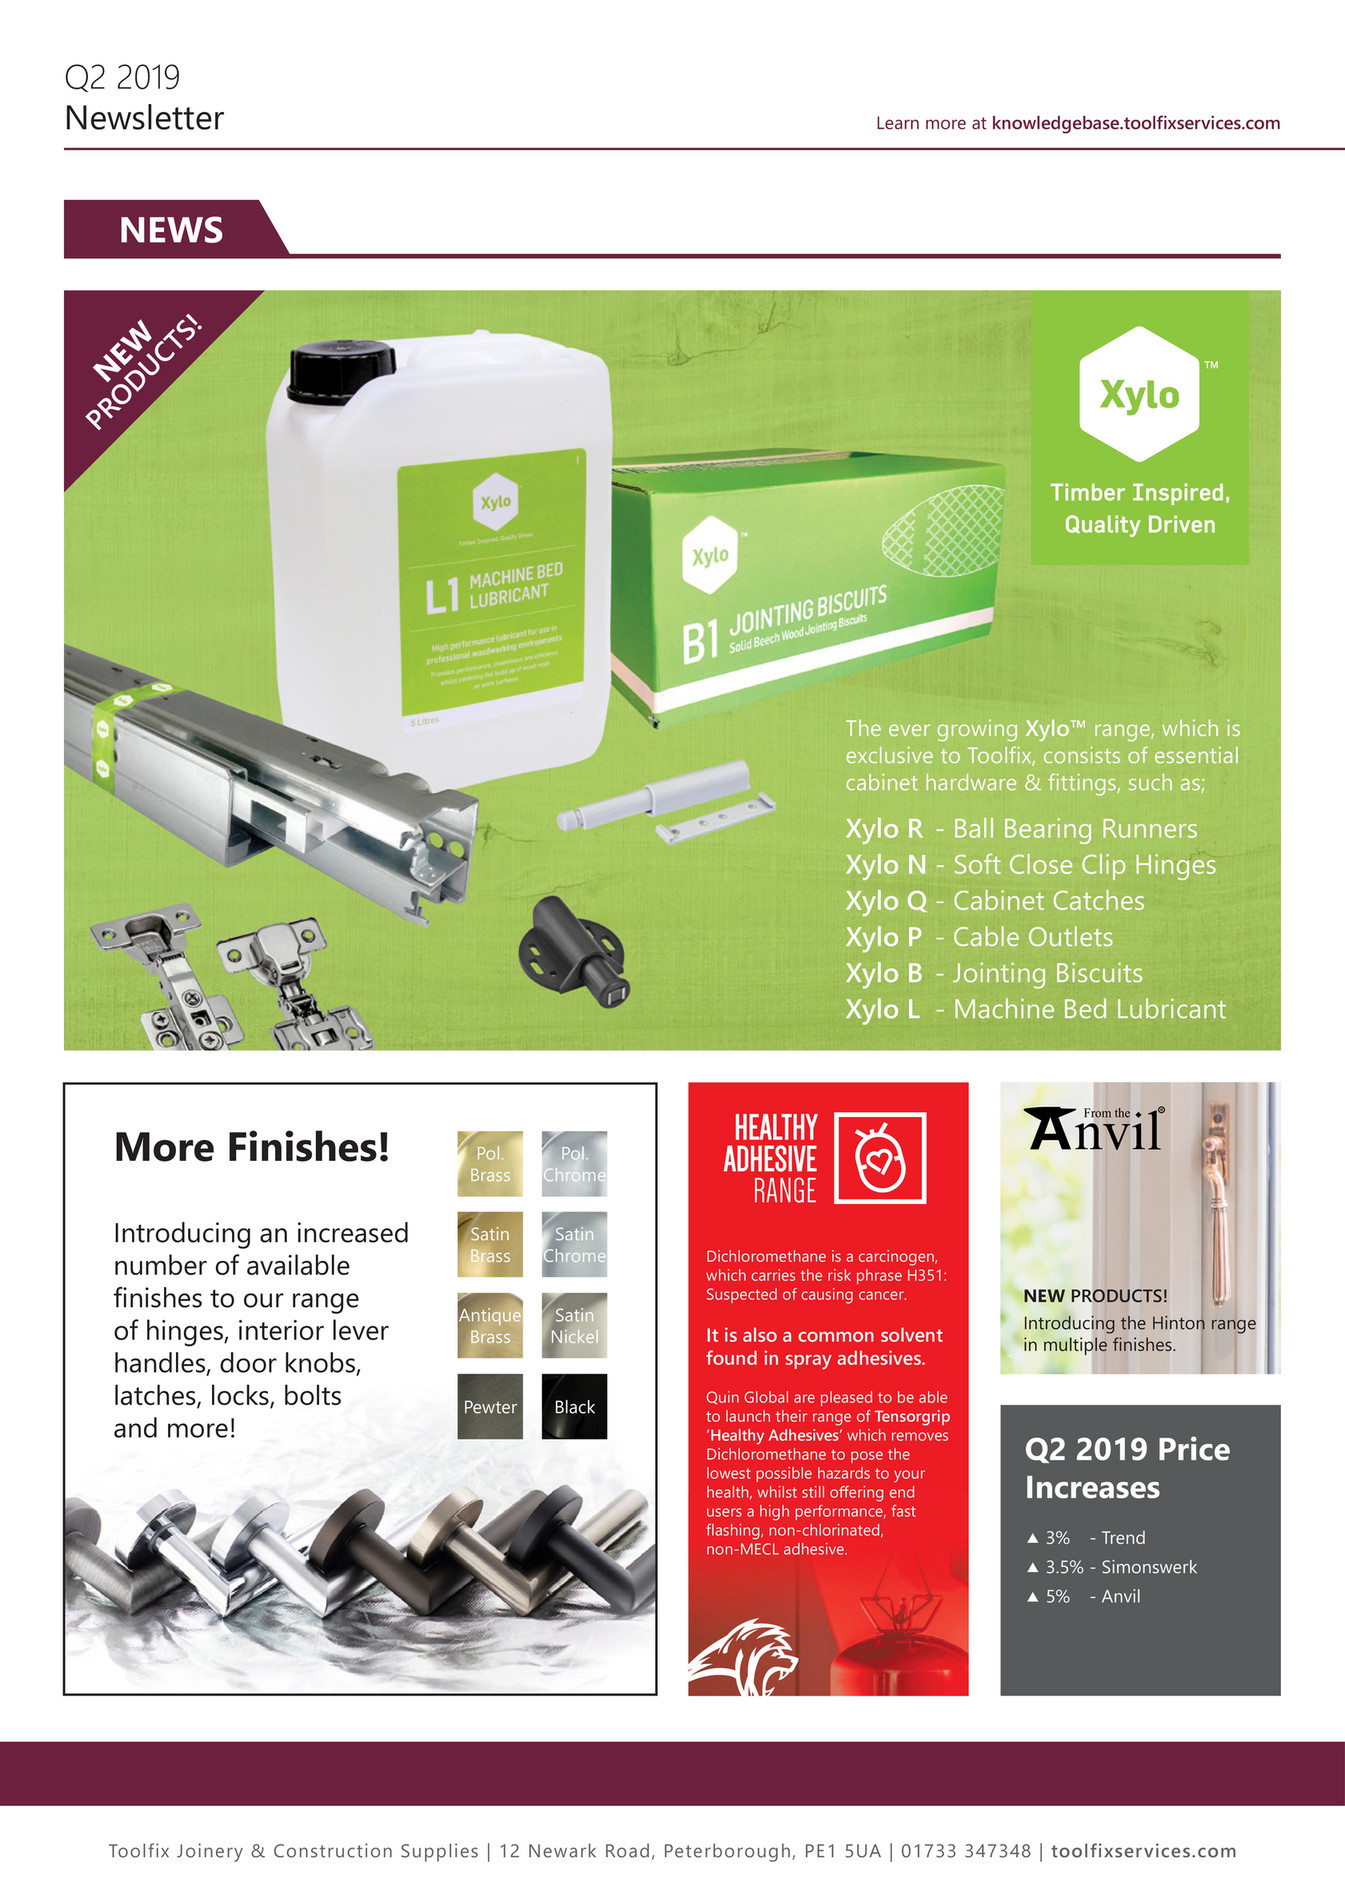 Toolfix Toolfix Newsletter Q2 2019 Page 2 3 Created